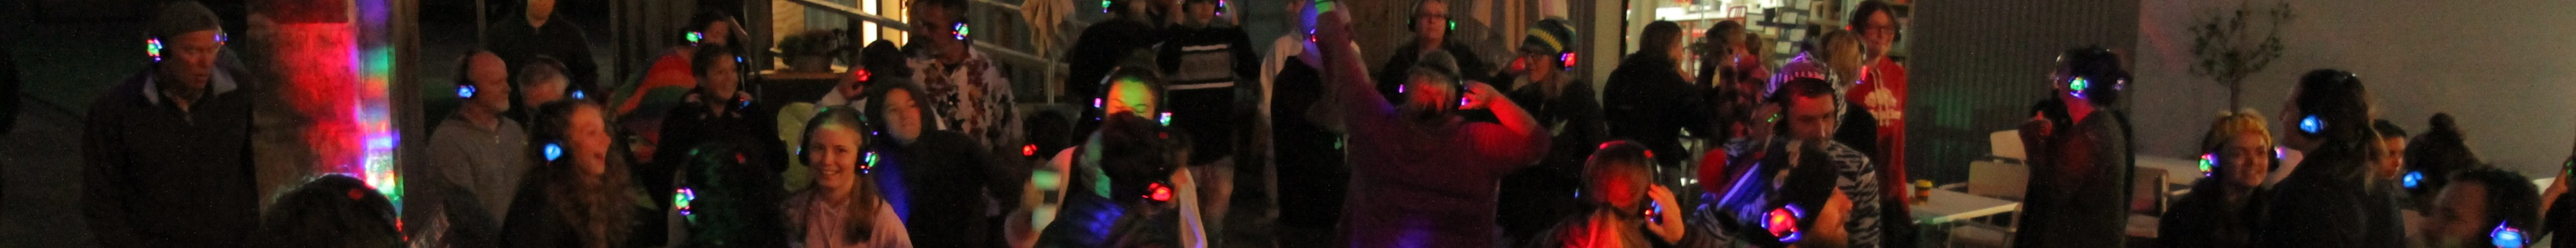 Dawn Rave Silent Disco at Kirby Lane in Nelson